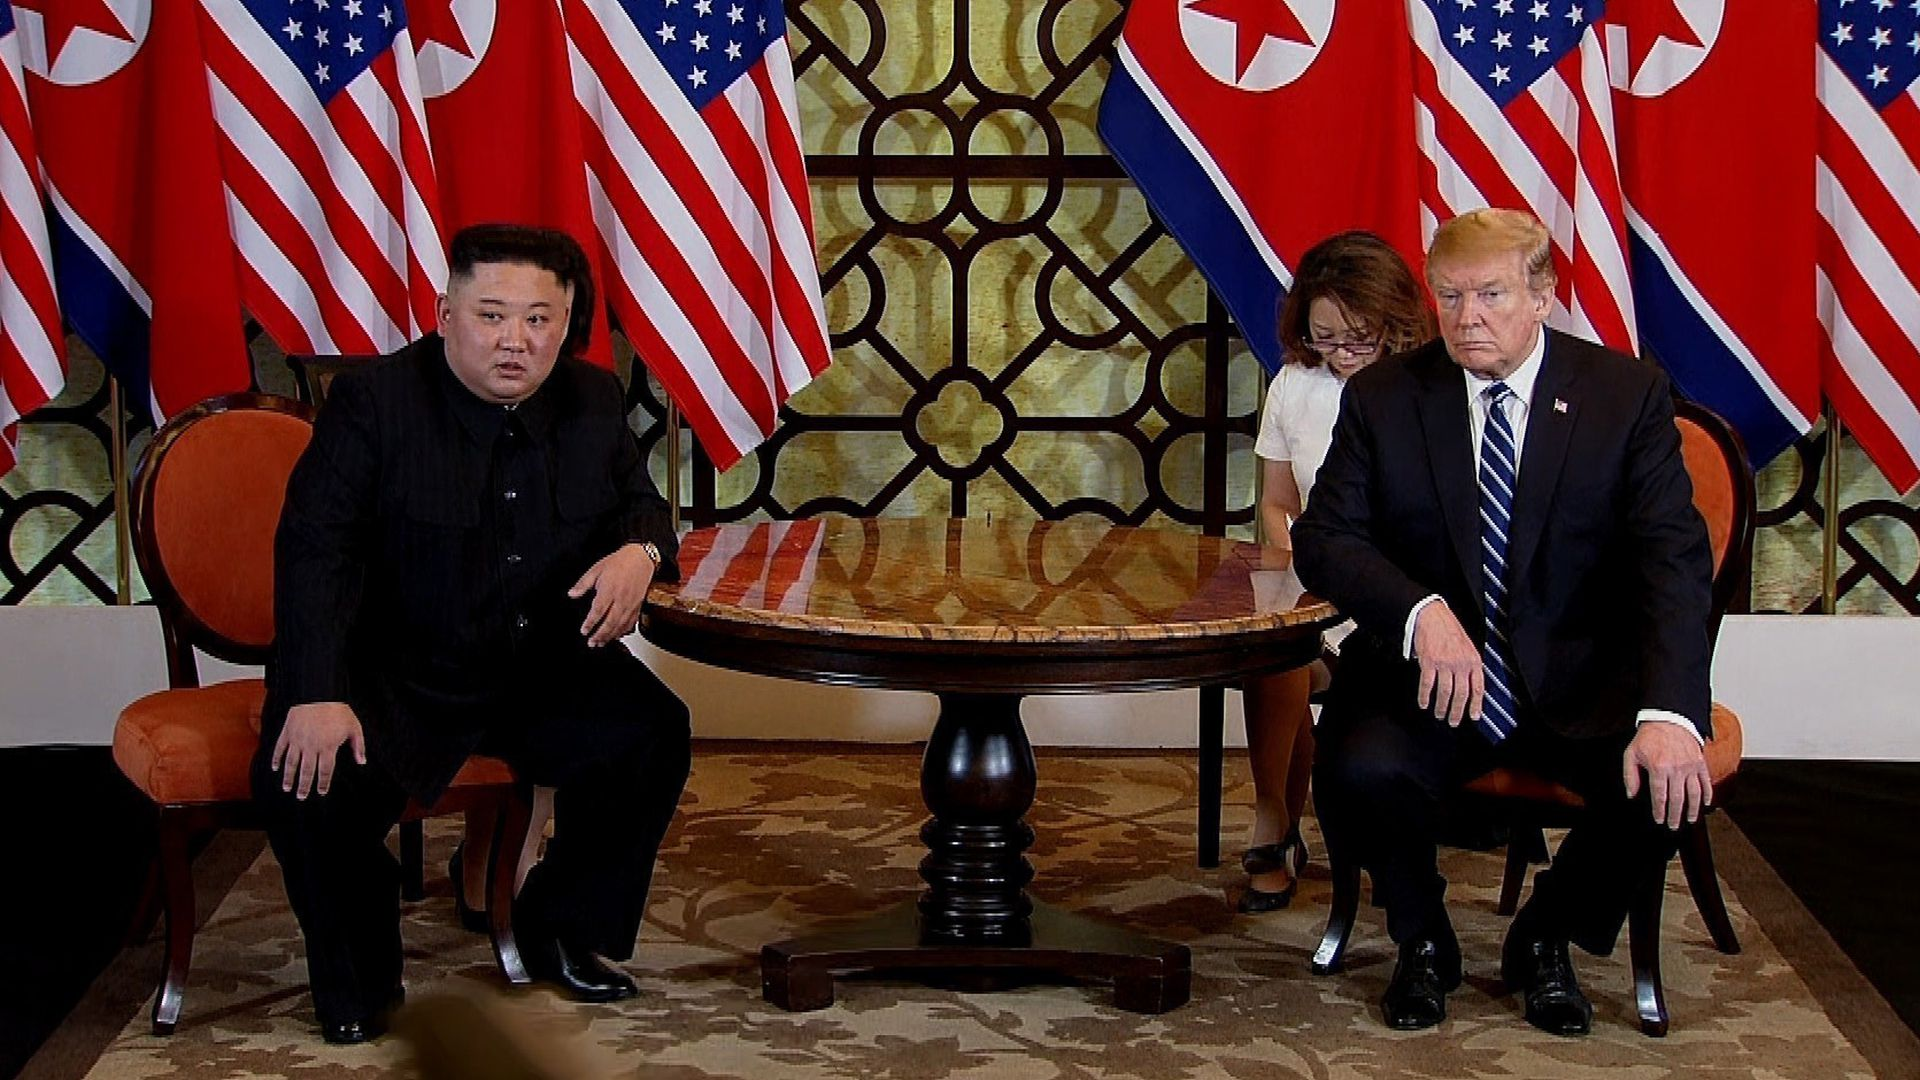 U.S. President Donald Trump (R) and North Korean leader Kim Jong-un (L) during their second summit meeting at the Sofitel Legend Metropole hotel on February 28, 2019 in Hanoi